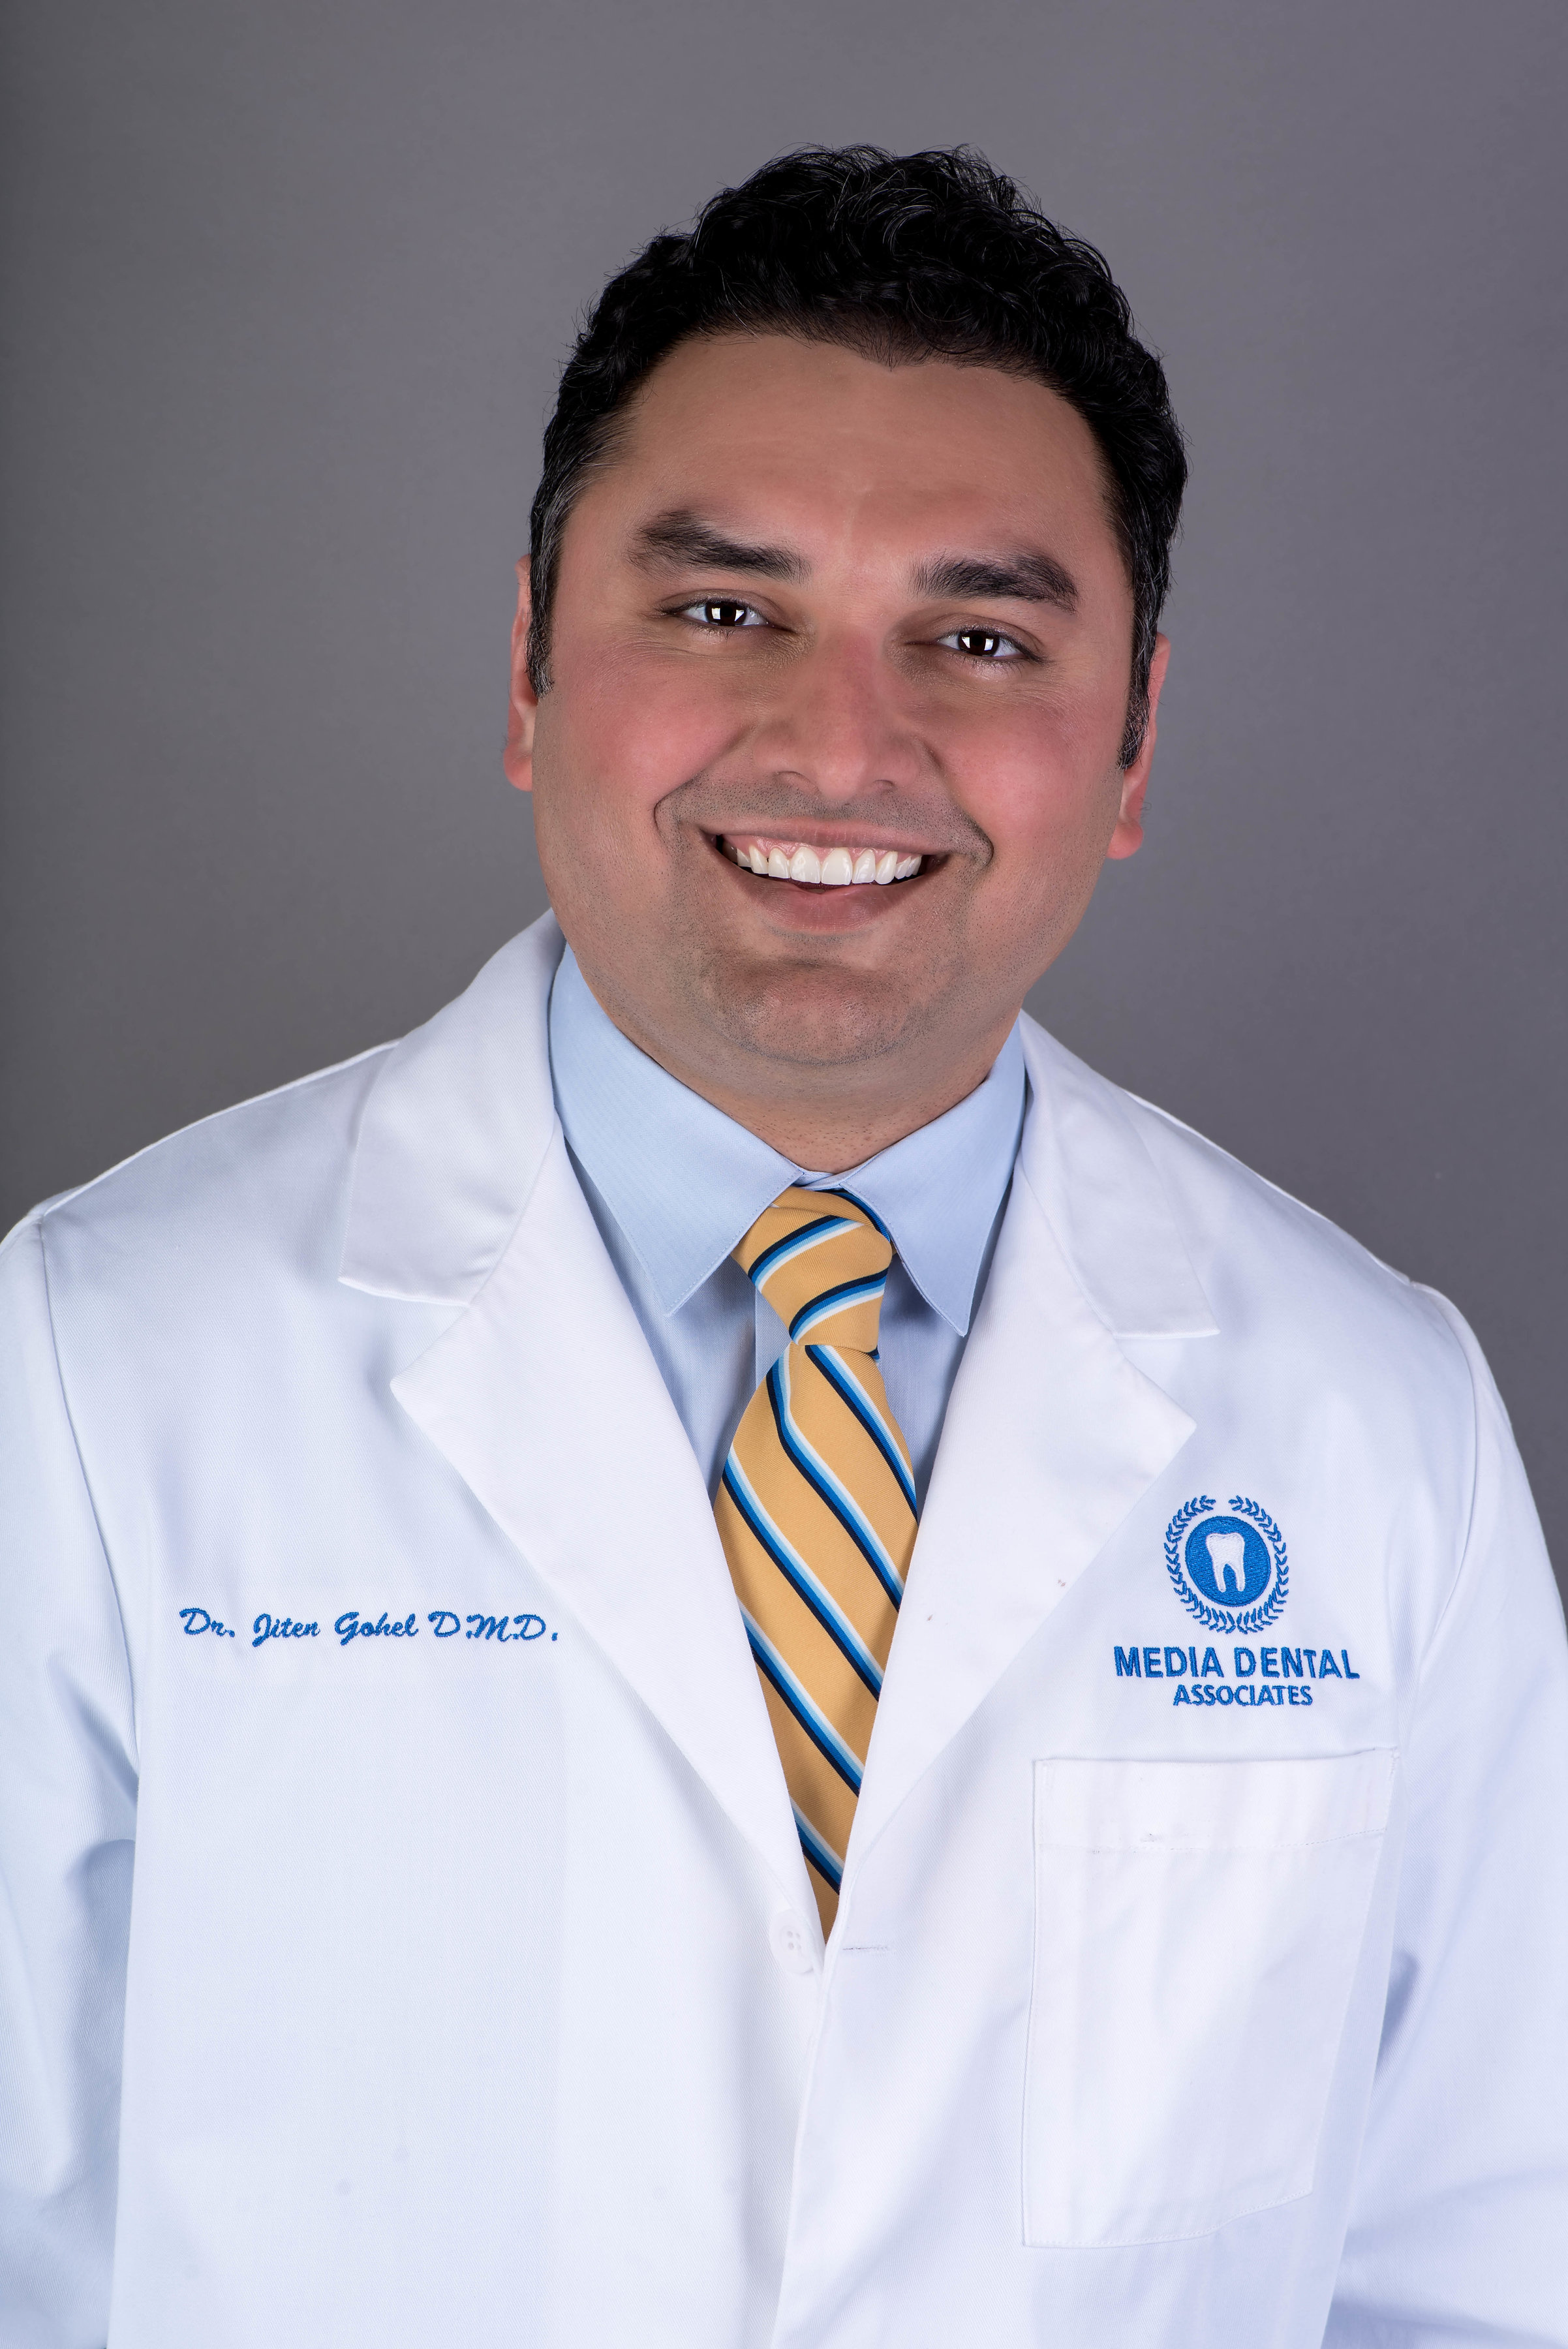 Dr Jay of Bootway Dental in West Chester, PA